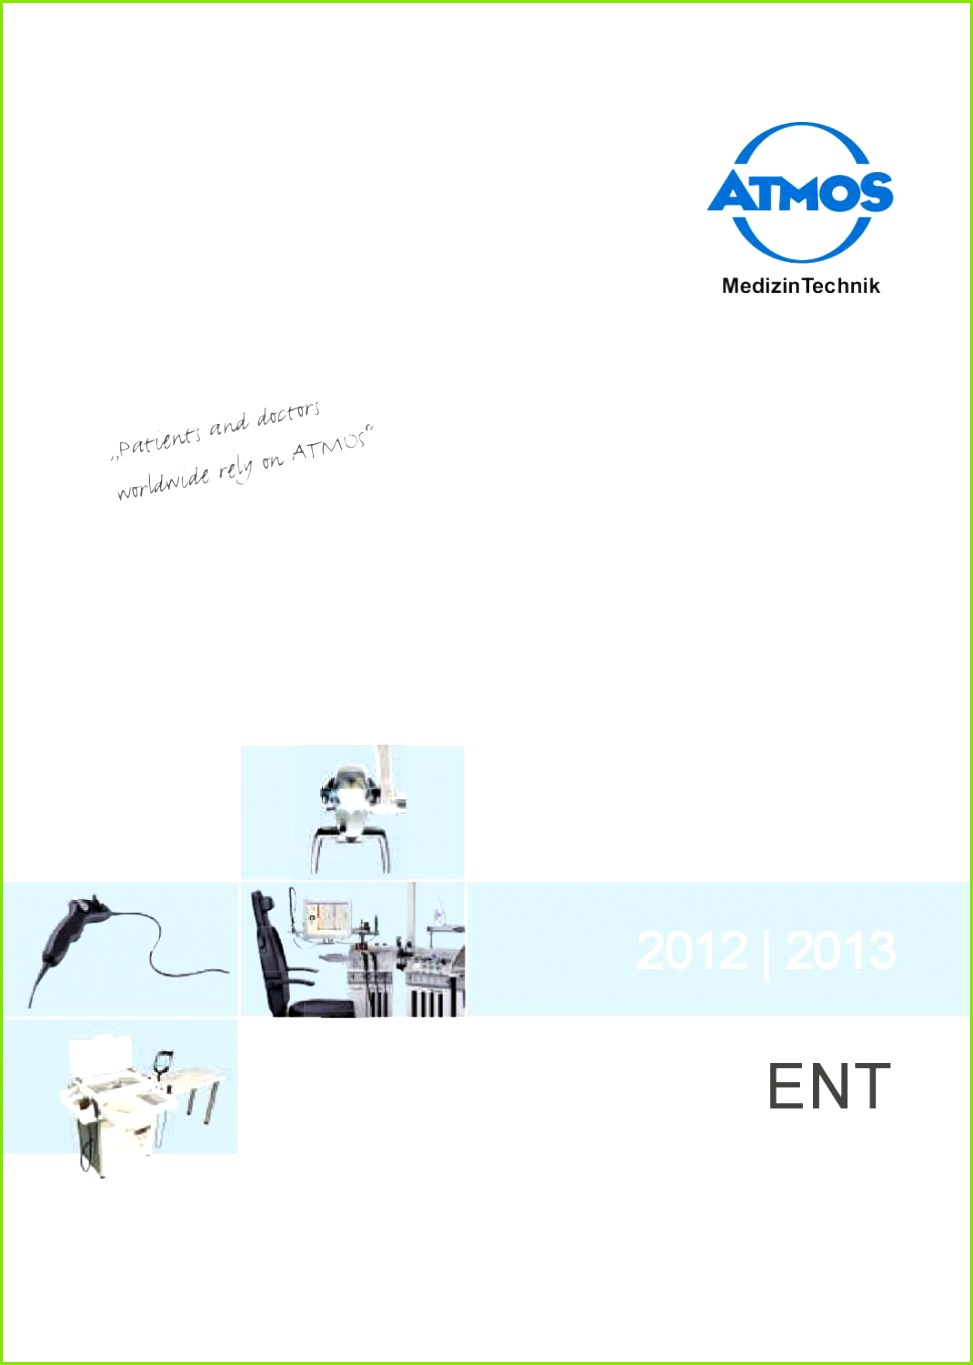 ATMOS ENT catalogue 2012 2013 english by ATMOS MedizinTechnik GmbH & Co KG issuu